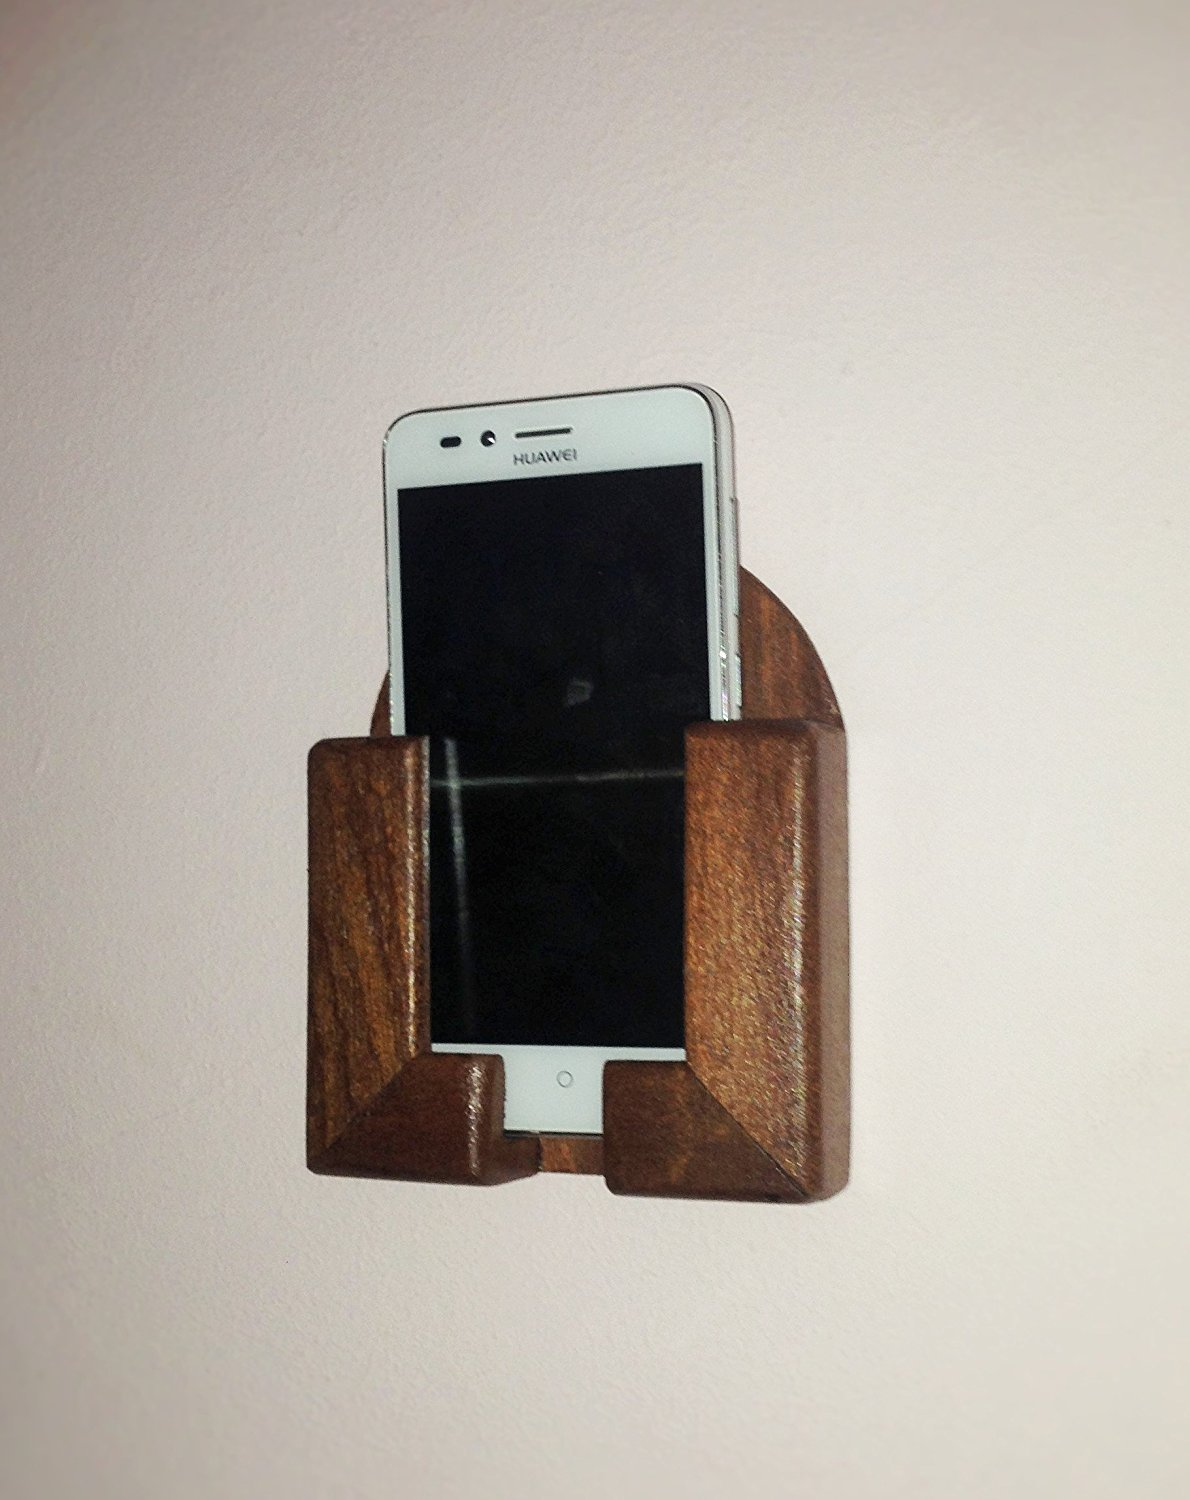 *FREE SHIPPING* Wall-mounted Cherry Wood Mobile Phone / Smartphone holder